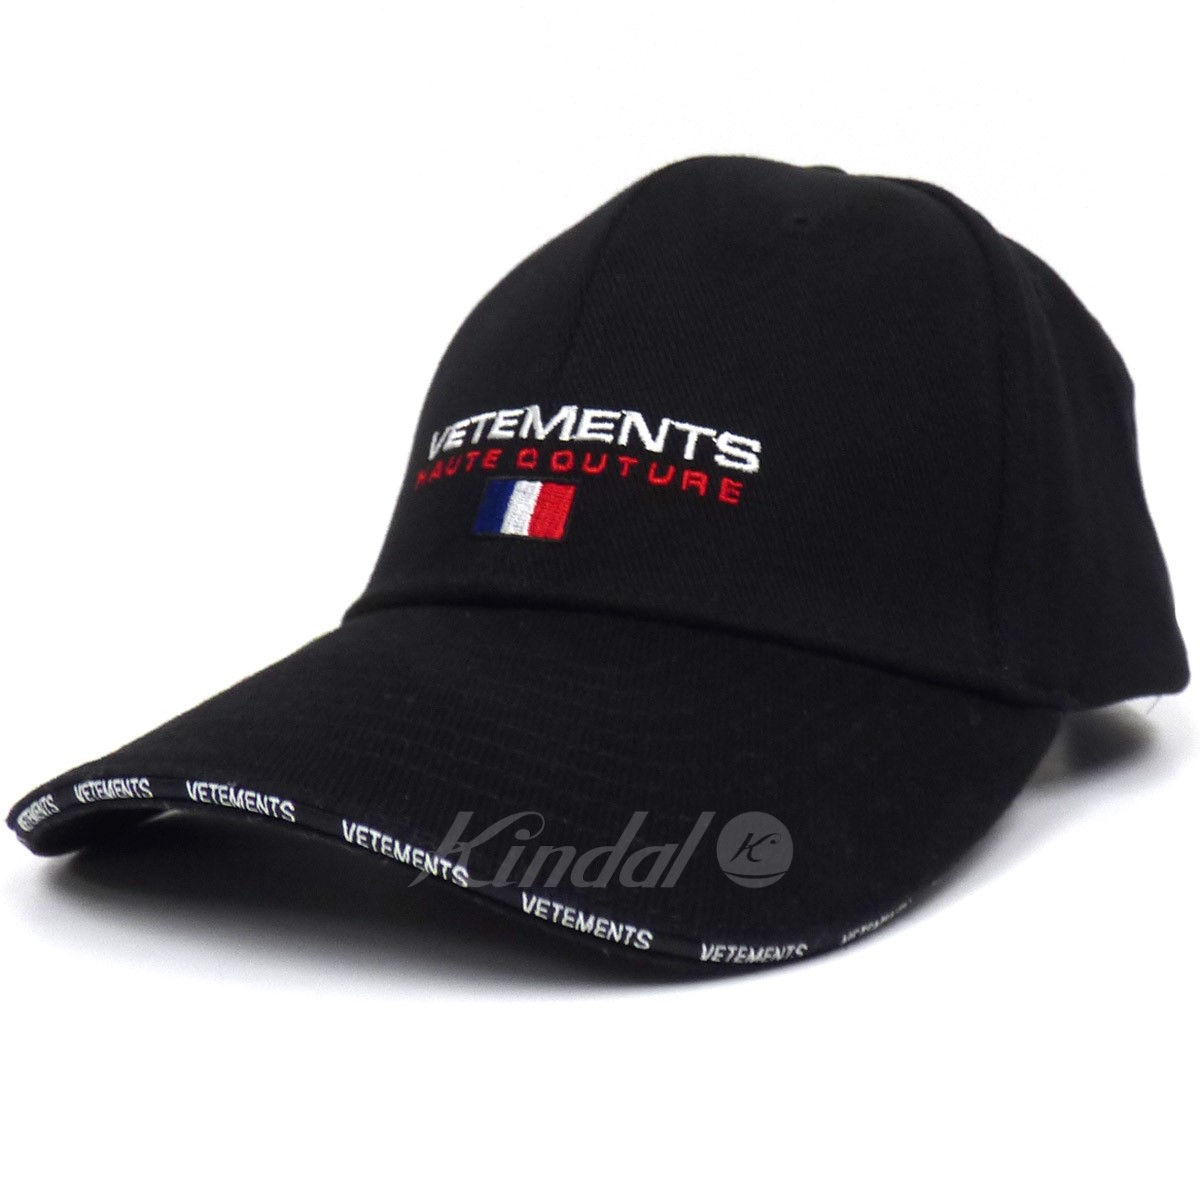 27dc6b1d1 VETEMENTS 18SS Logo Embroidered Cotton Cap logo cap black size: Free (can  adjust it) (ヴェトモン)